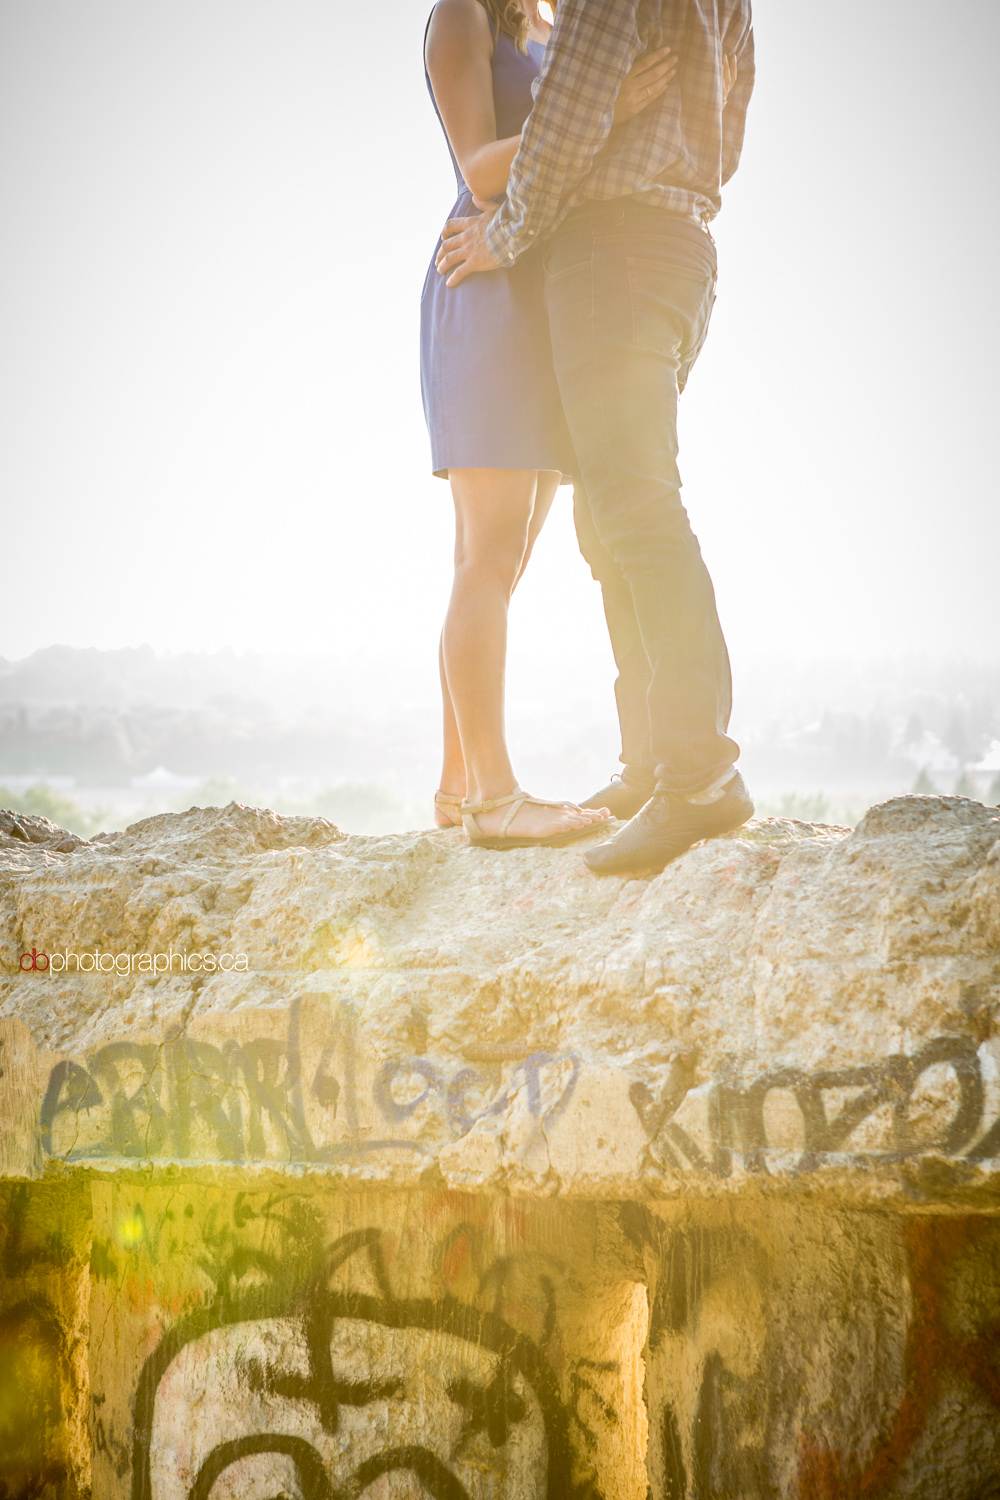 Ben & Melissa - Engagement Session - 20140713 - 0049.jpg